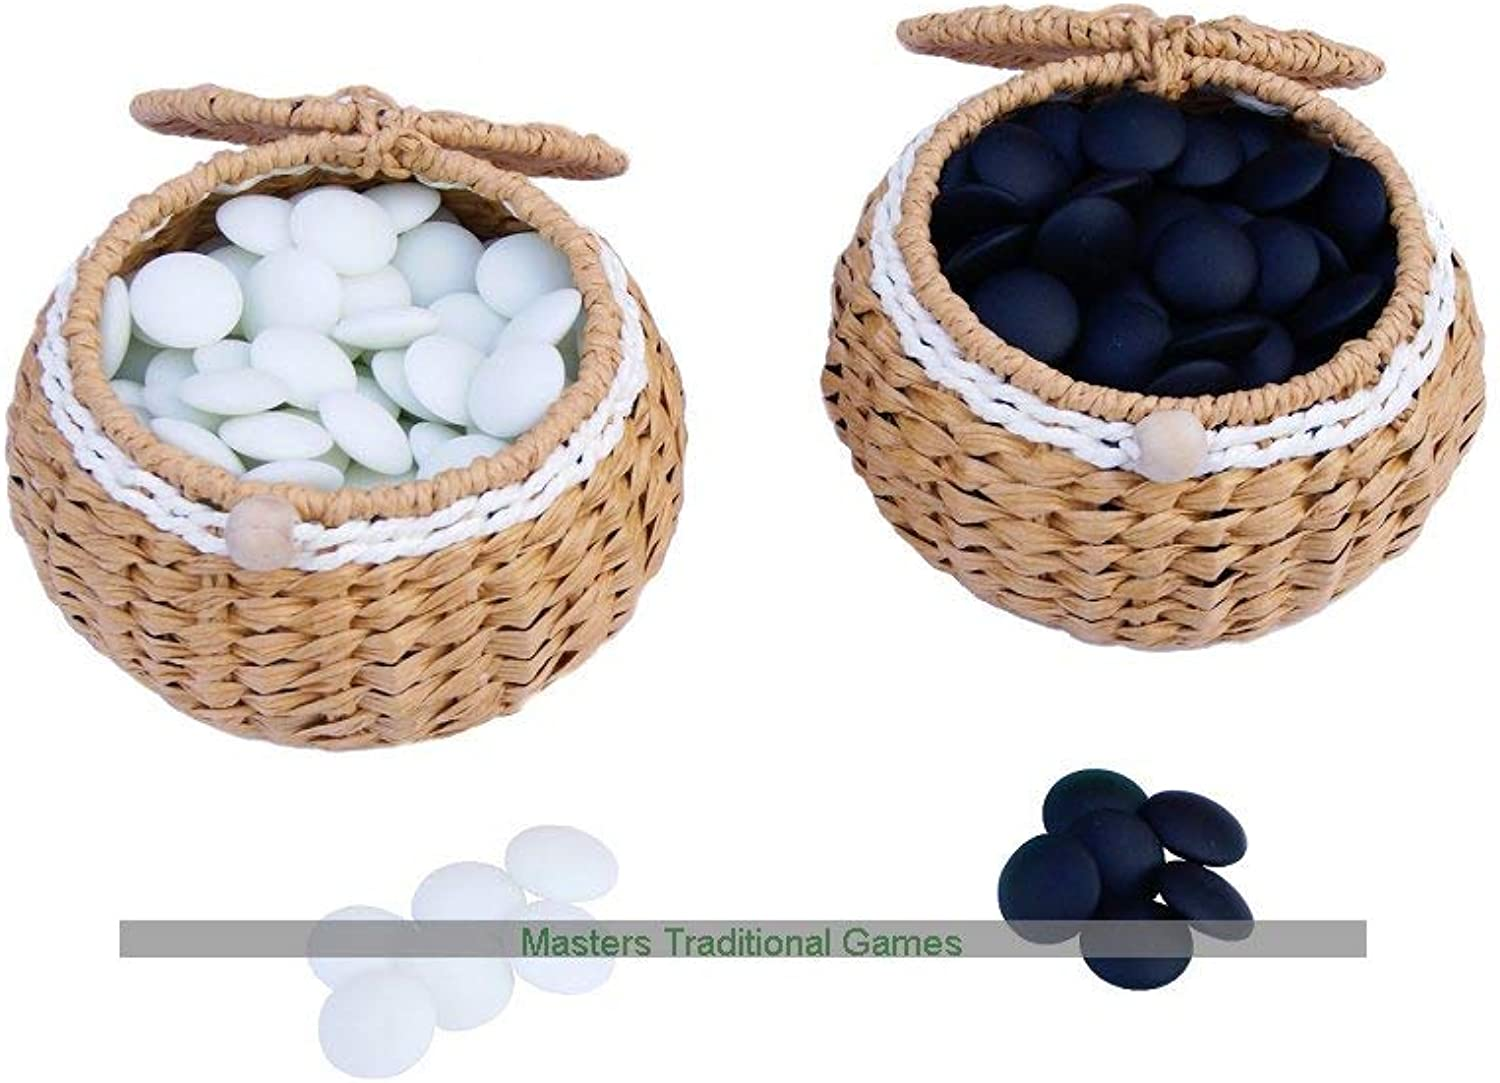 Masters Traditional Games Yunzi Go Stones in Wicker Bowls